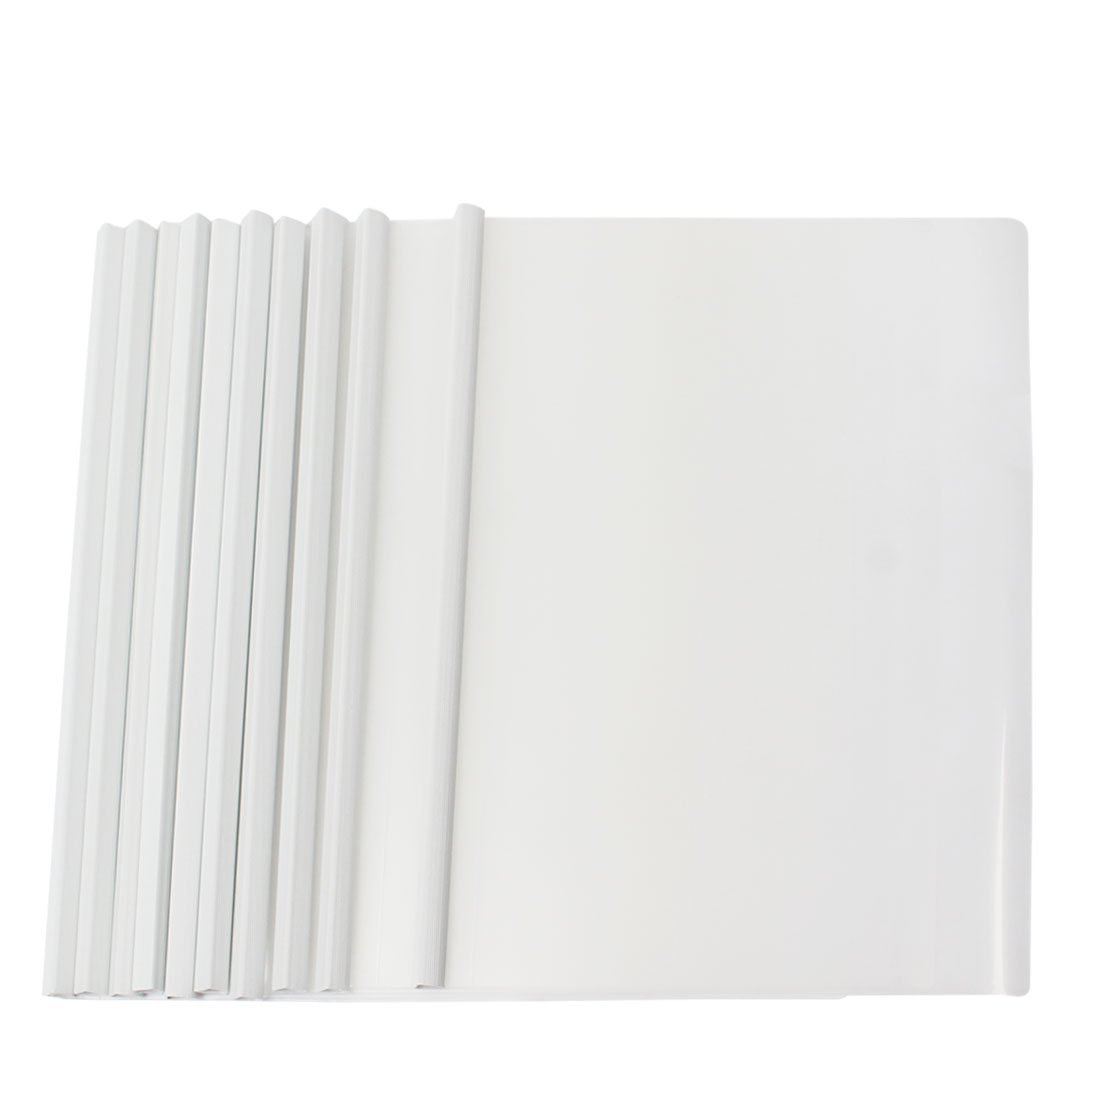 Plastic Envelope File Folder Report Gray 10 Pcs for A4 Paper Home Office